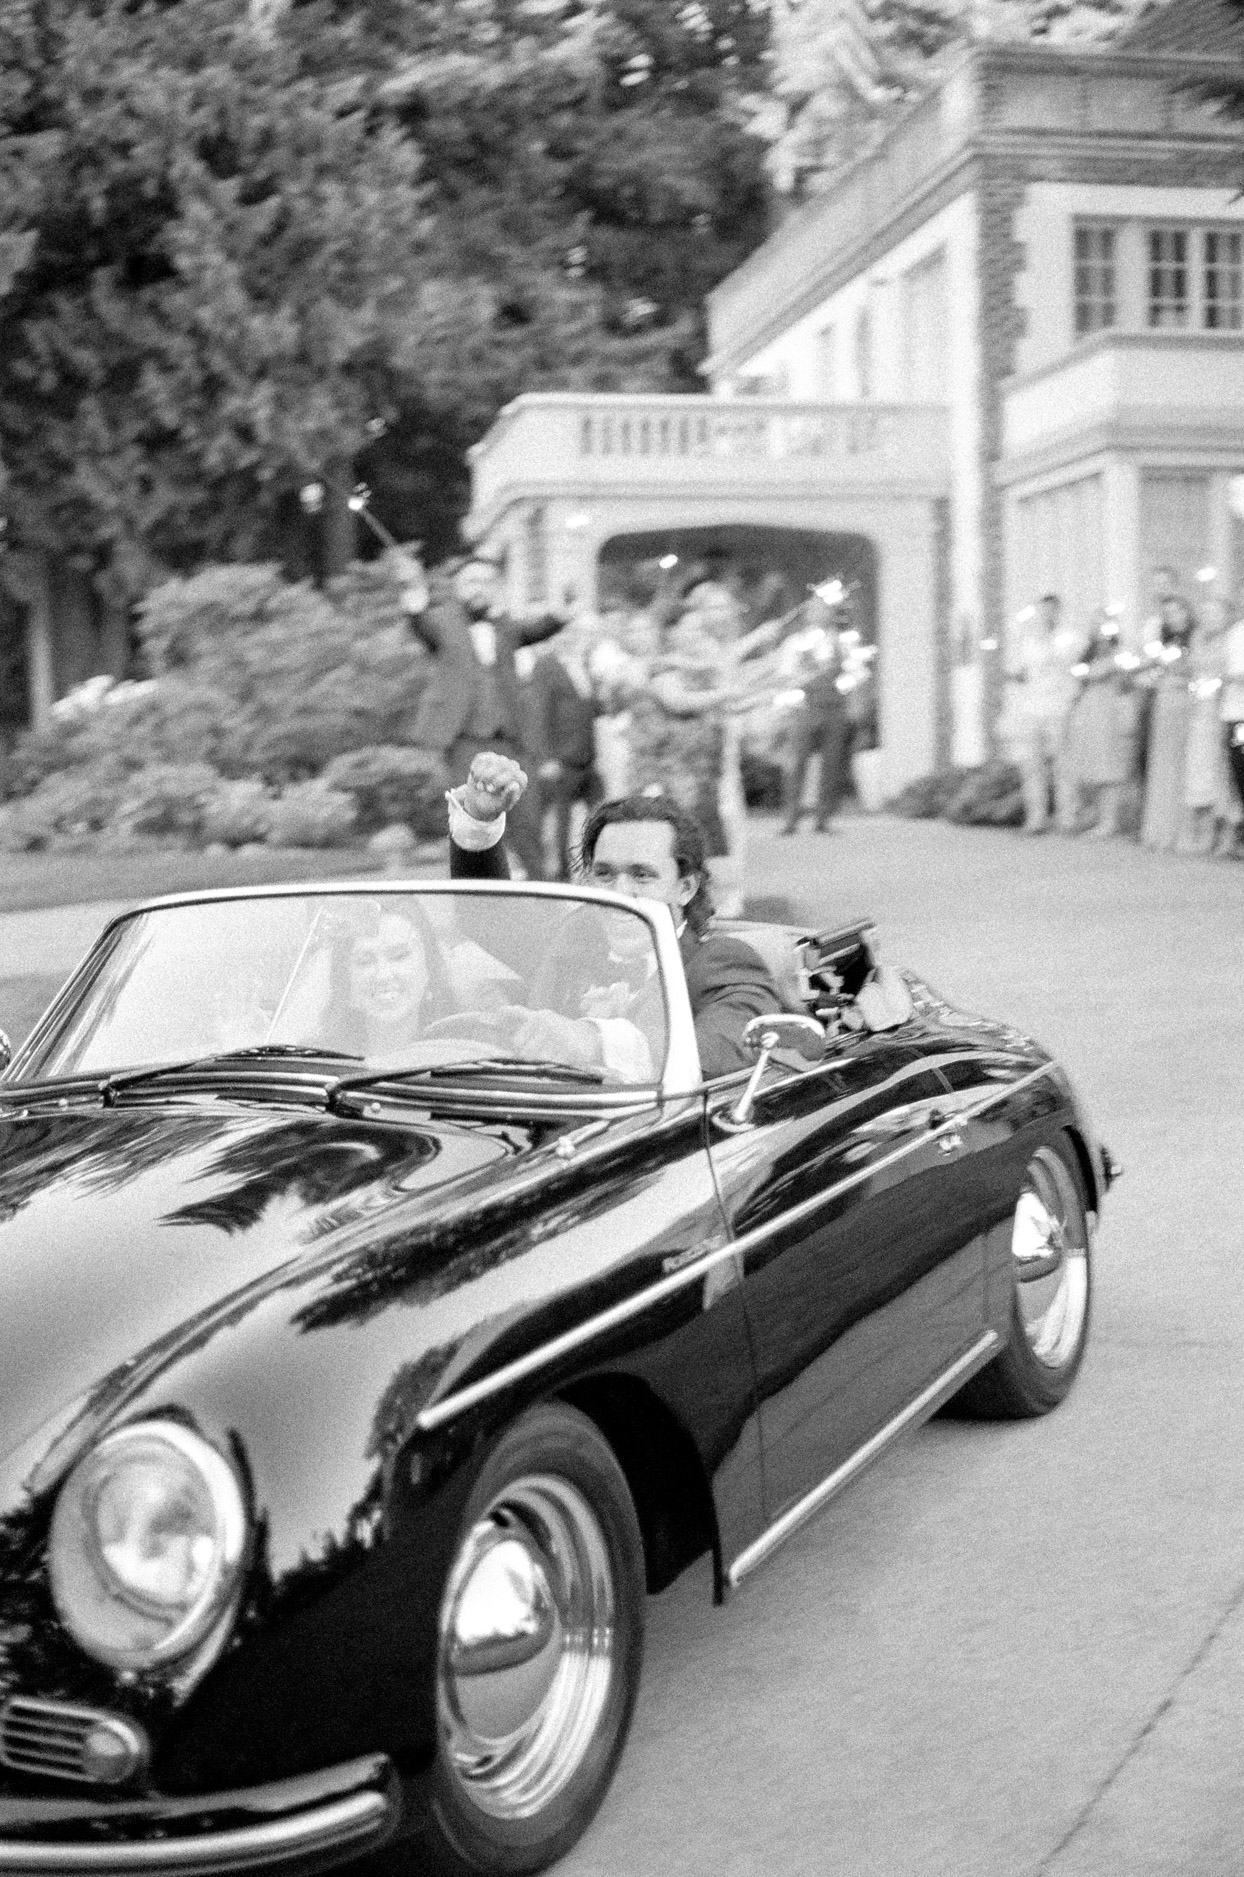 groom raises fist smiling driving away with bride in vintage car